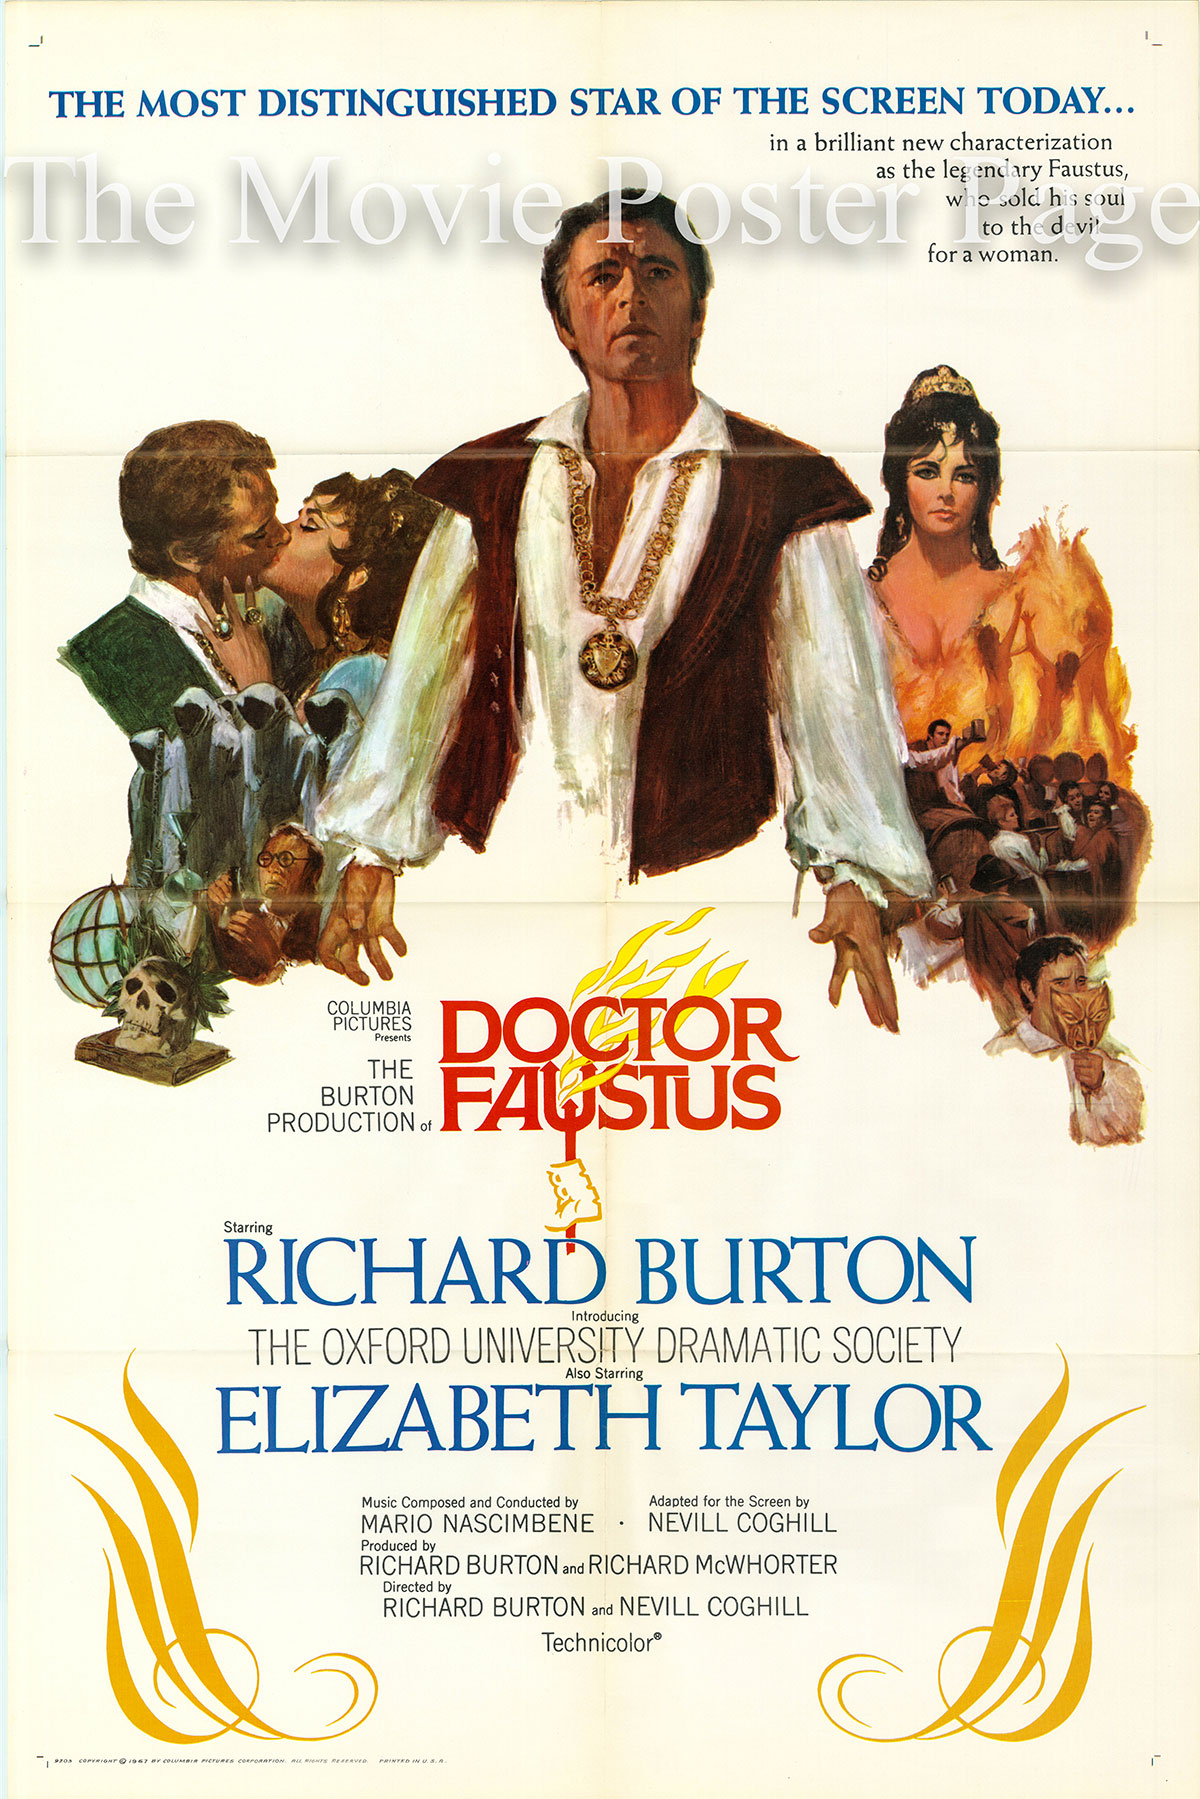 Pictured is a US promotional one-sheet poster for the 1967 Richard Burton and Nevill Coghill film Dr. Faustus starring Richard Burton as Dr. Faustus.